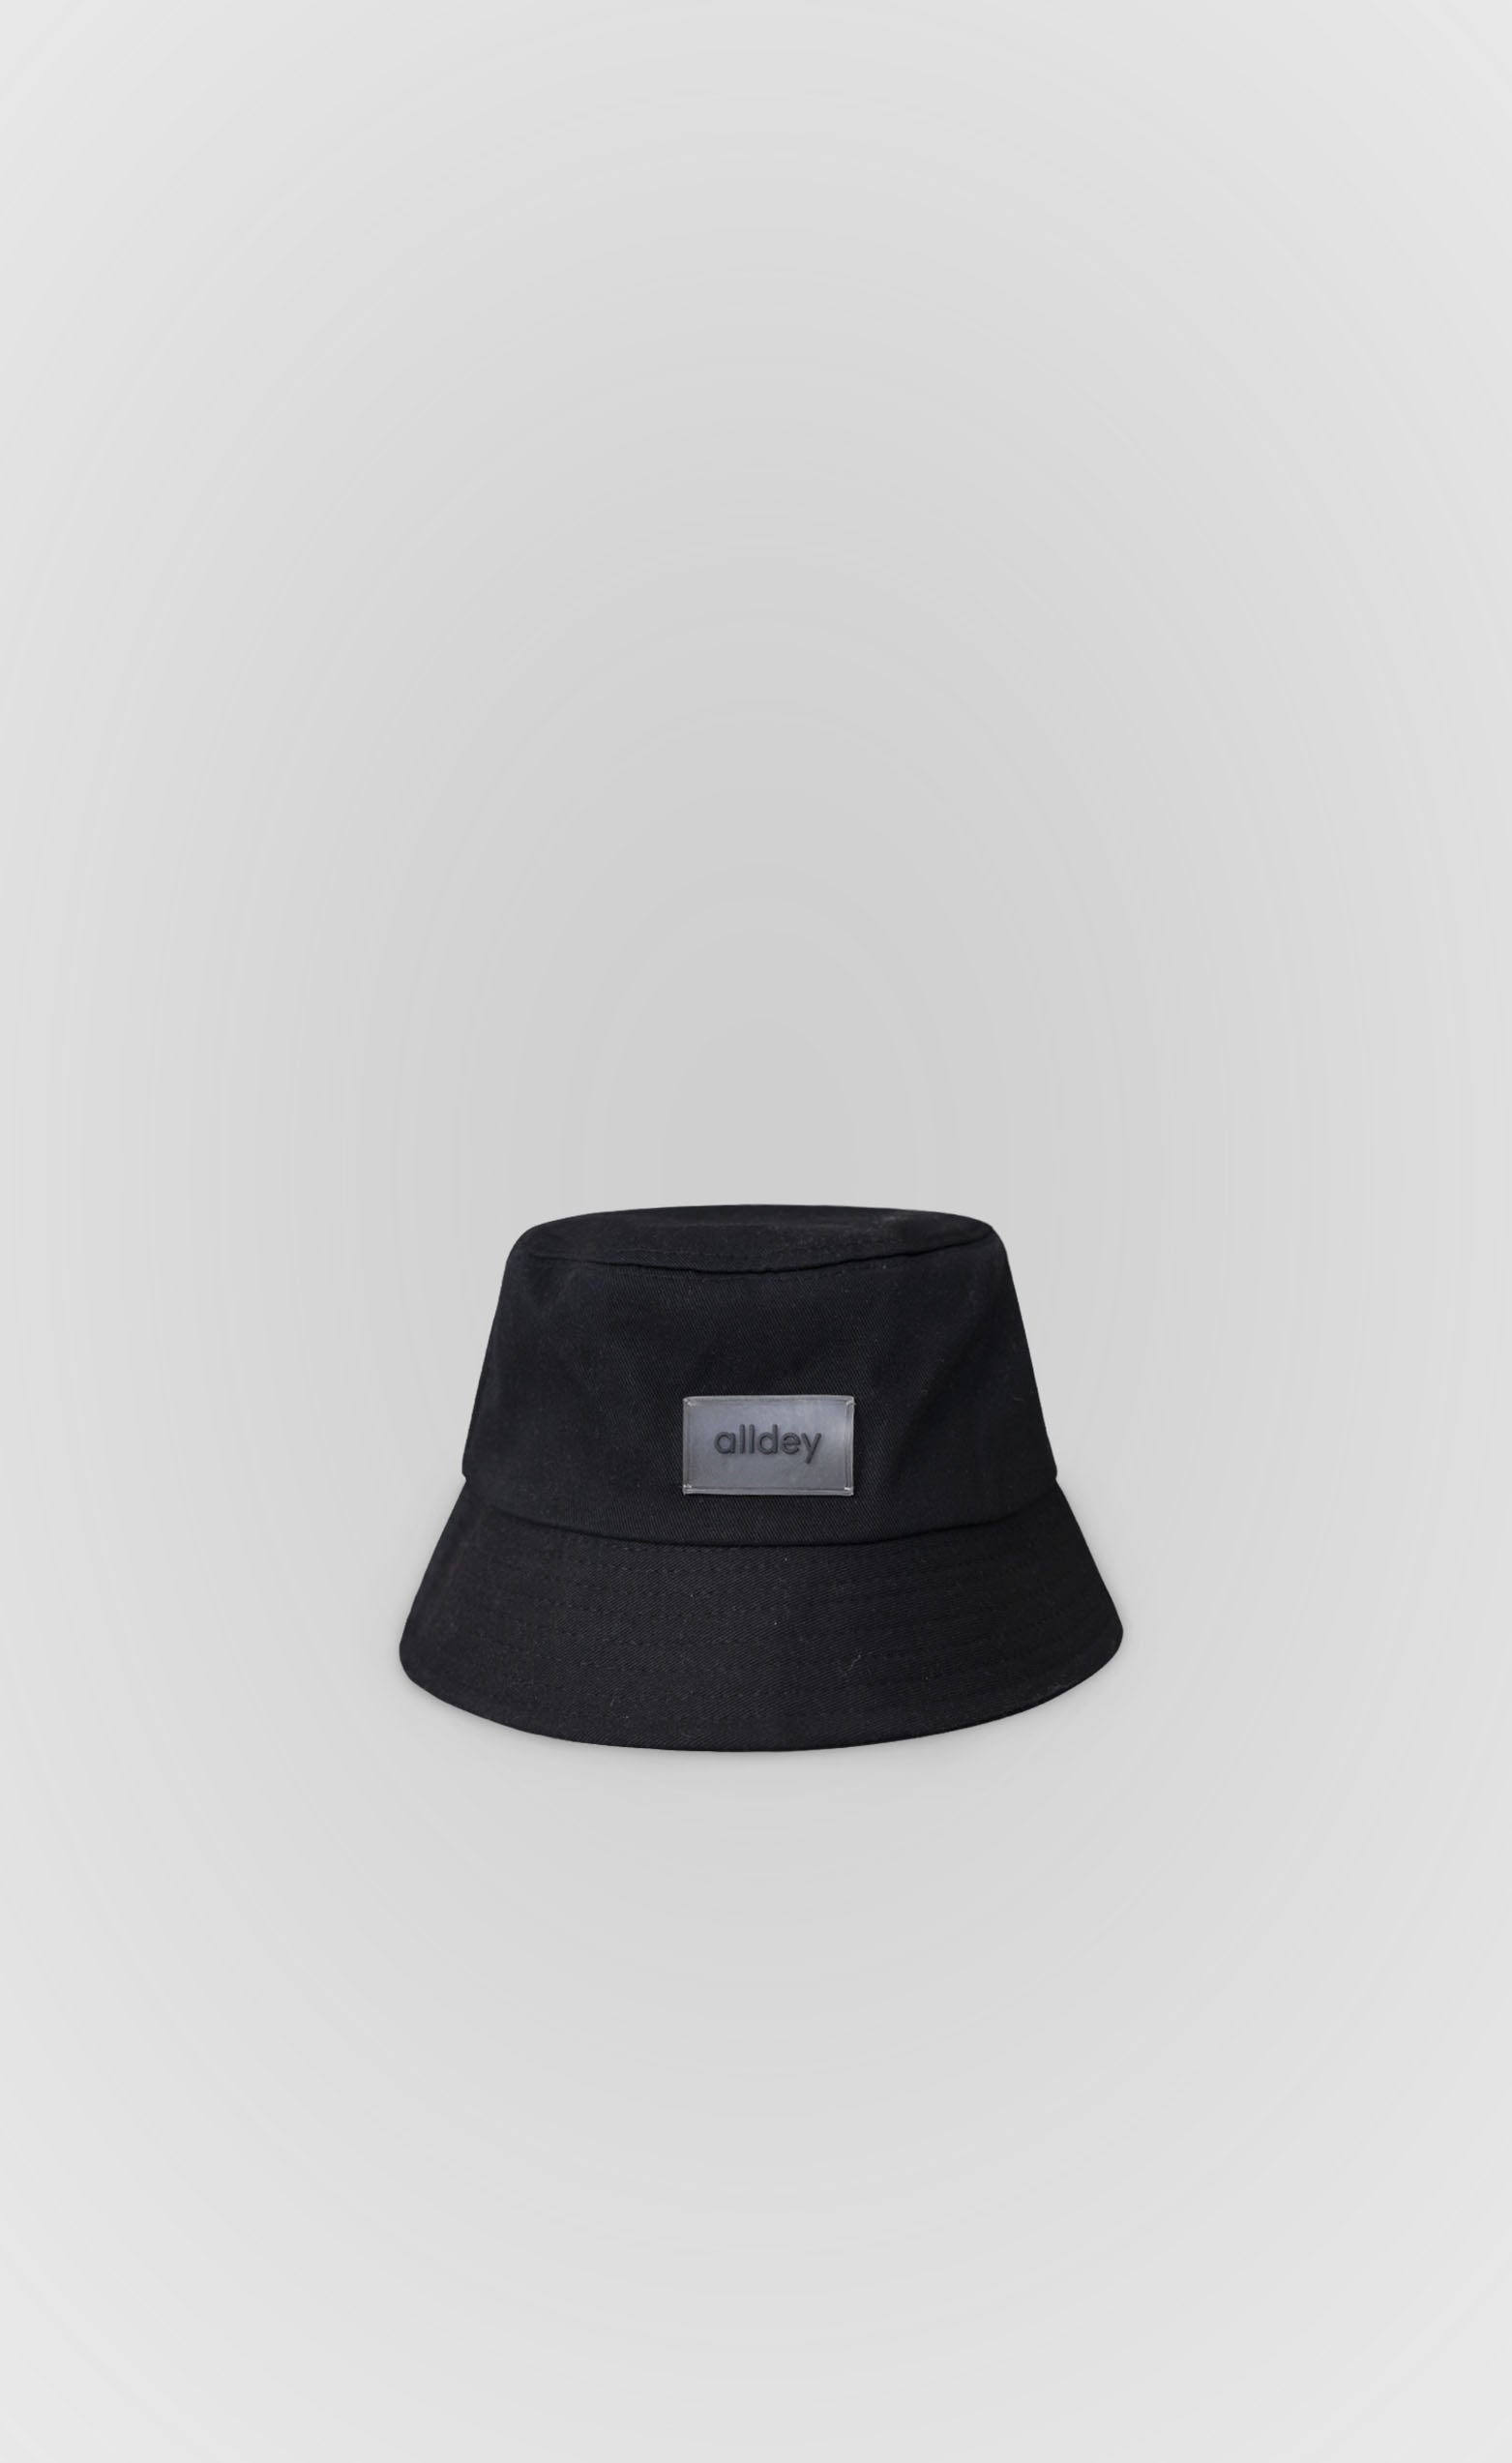 Charcoal Black Bucket Hat - Alldey Studios